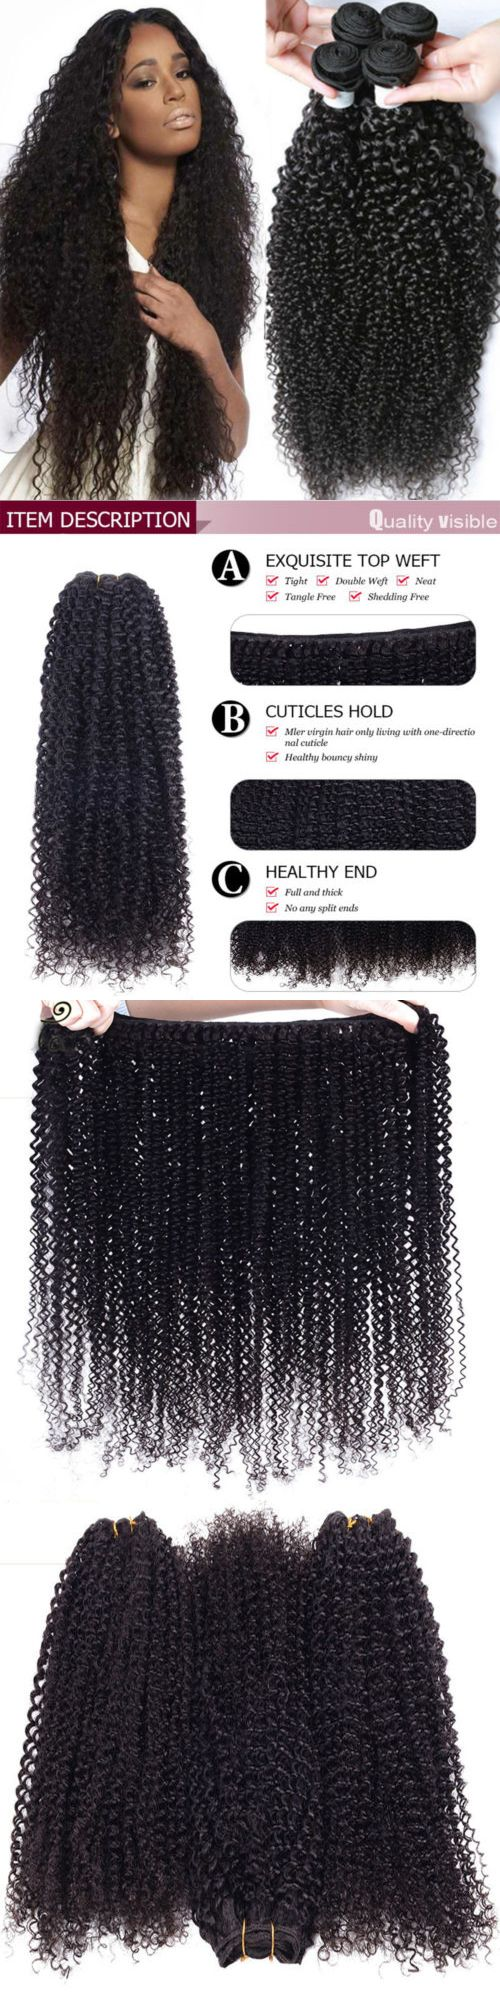 Hair Extensions: Us 3 Bundles 300G Kinky Curly Weave Virgin Human Hair 100% Unprocessed Brazilian -> BUY IT NOW ONLY: $36.73 on eBay!